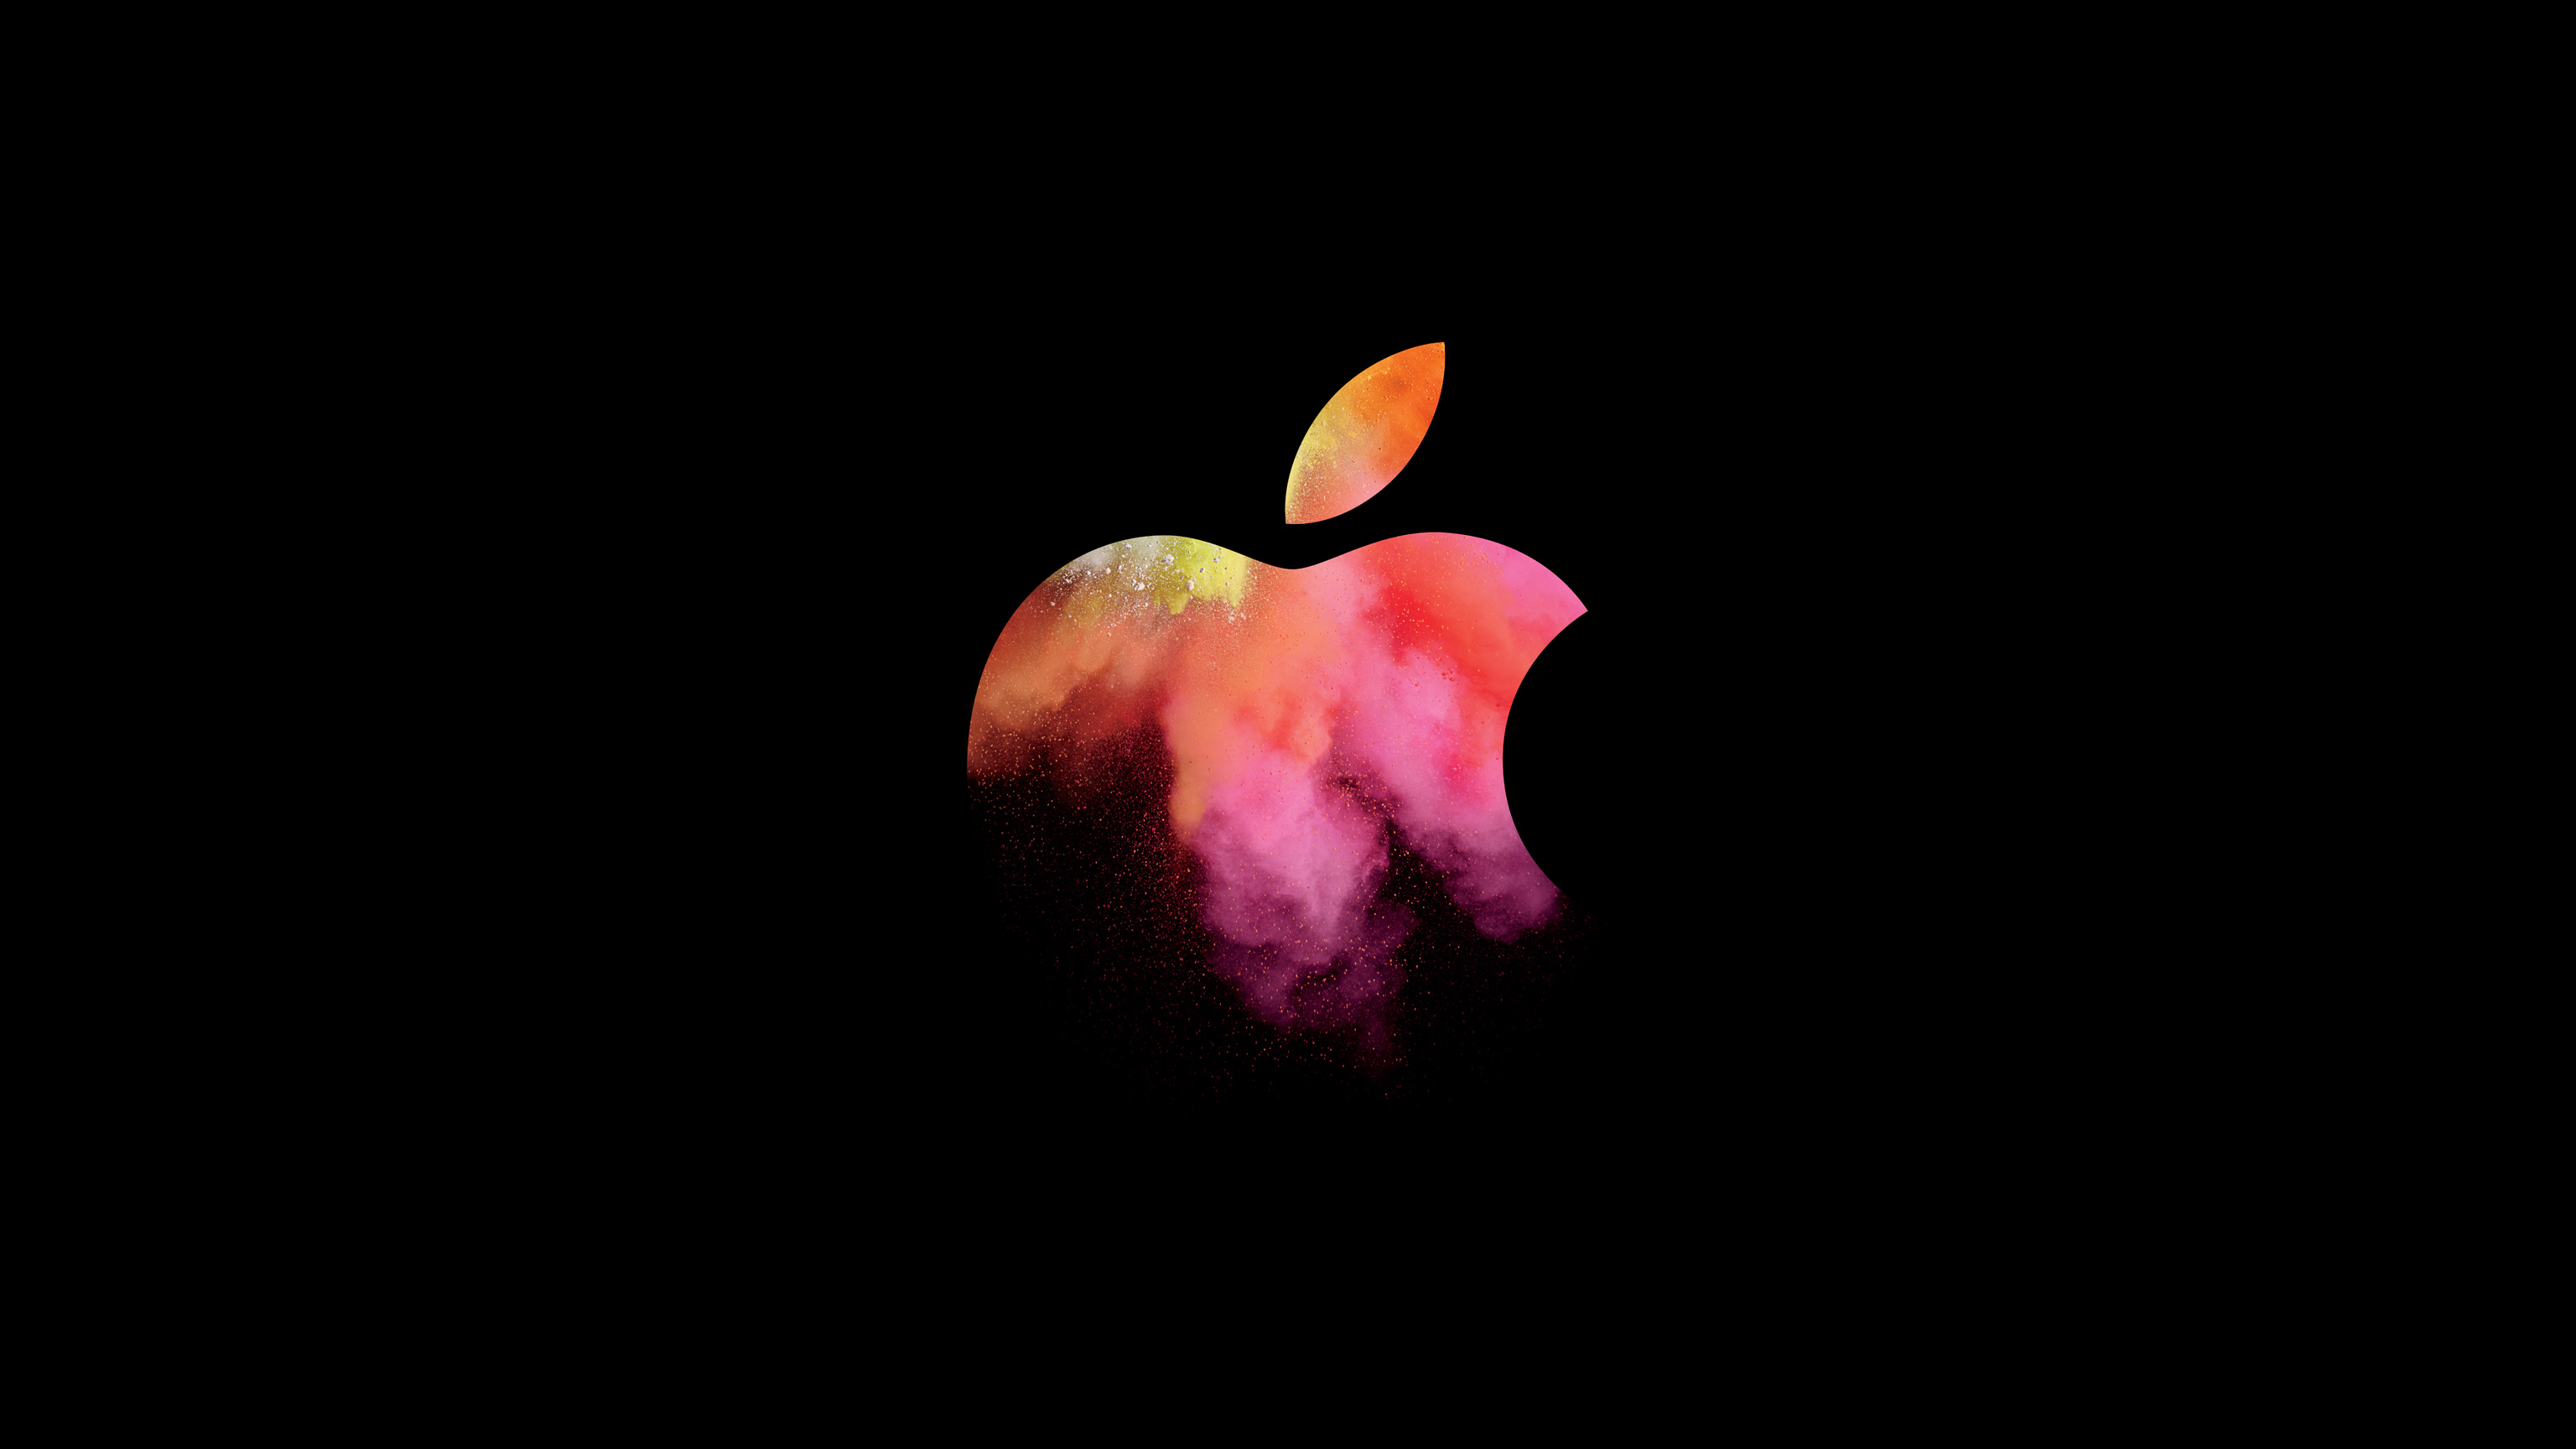 Apple Event 20161027 poster_large_2x.jpg